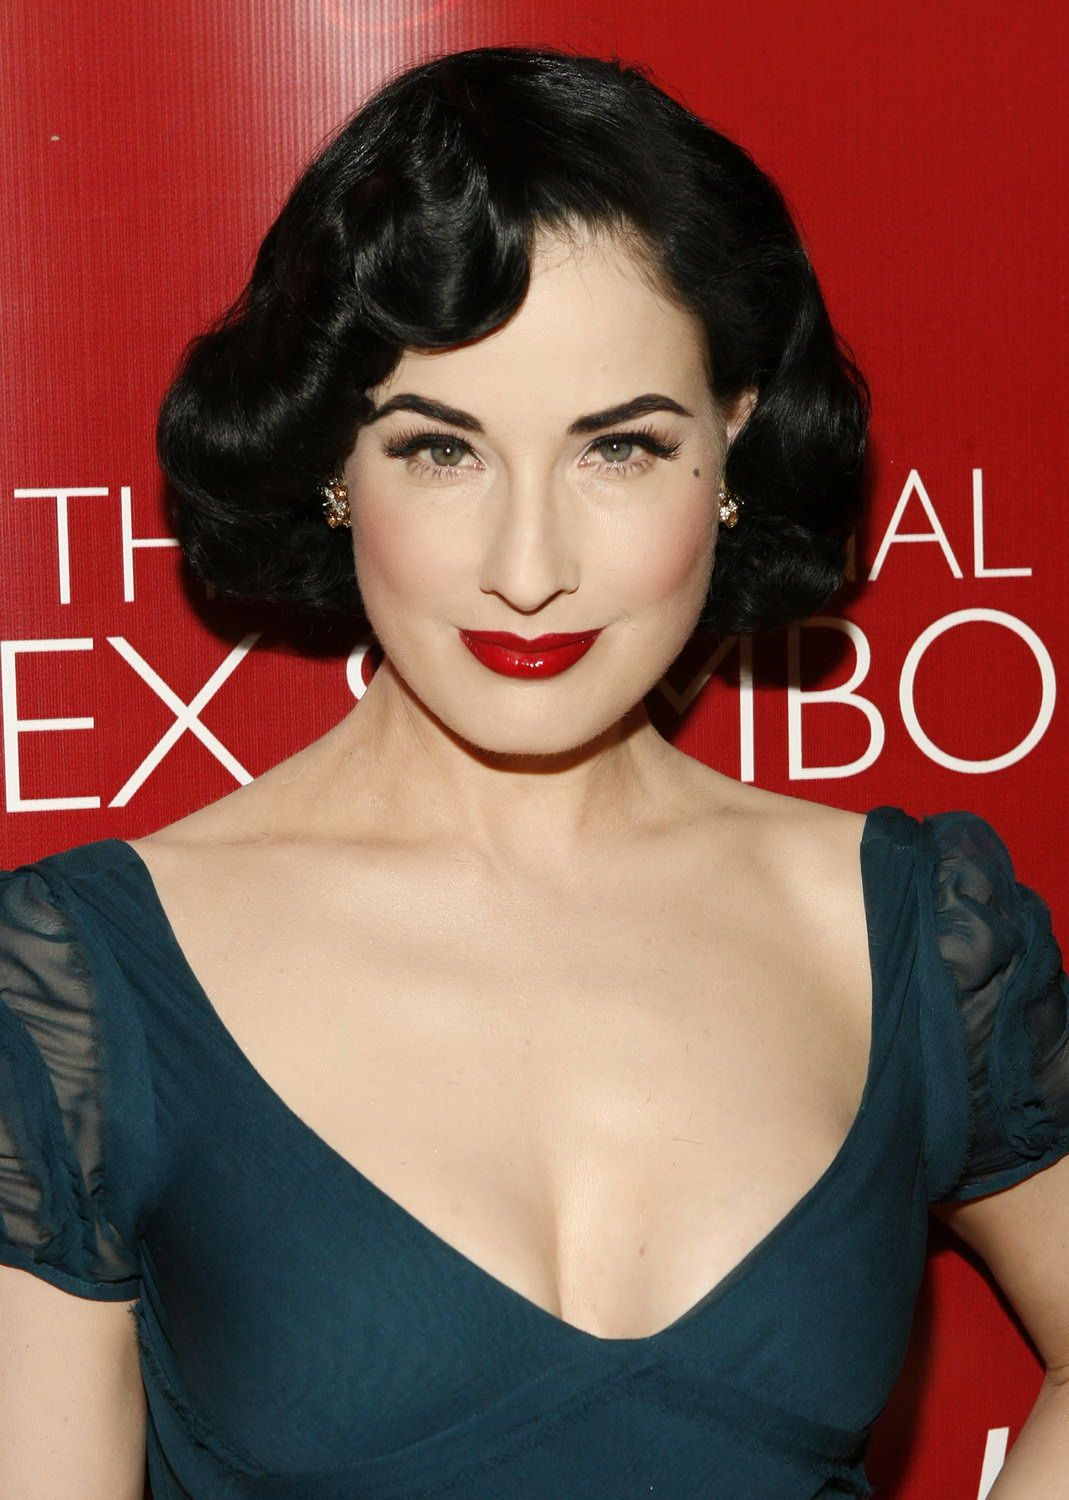 dita von teese #hair #hairstyle #makeup #model #retro #1950s